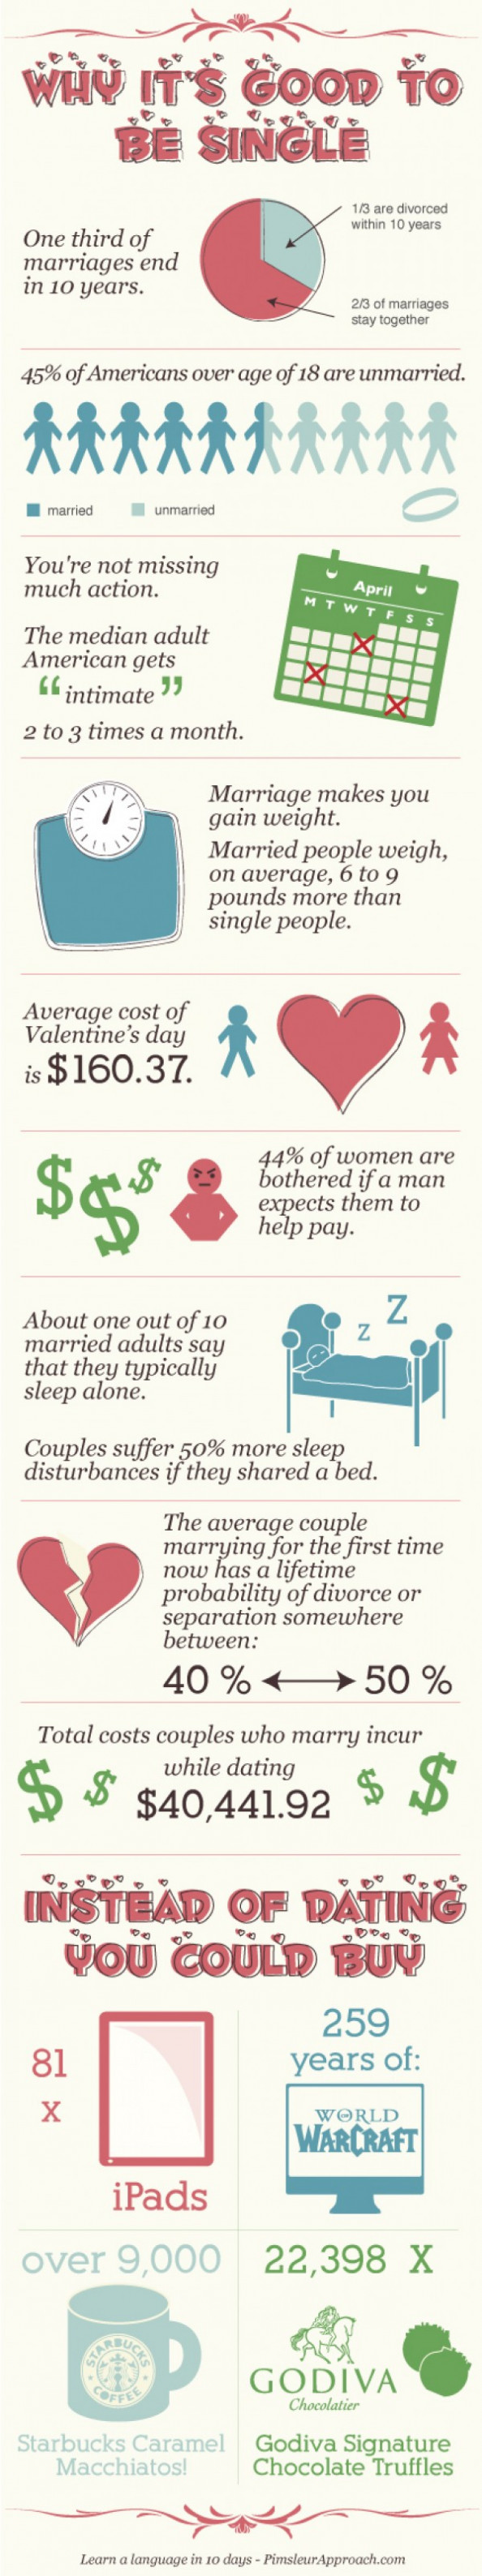 Why It's Good To Be Single Infographic